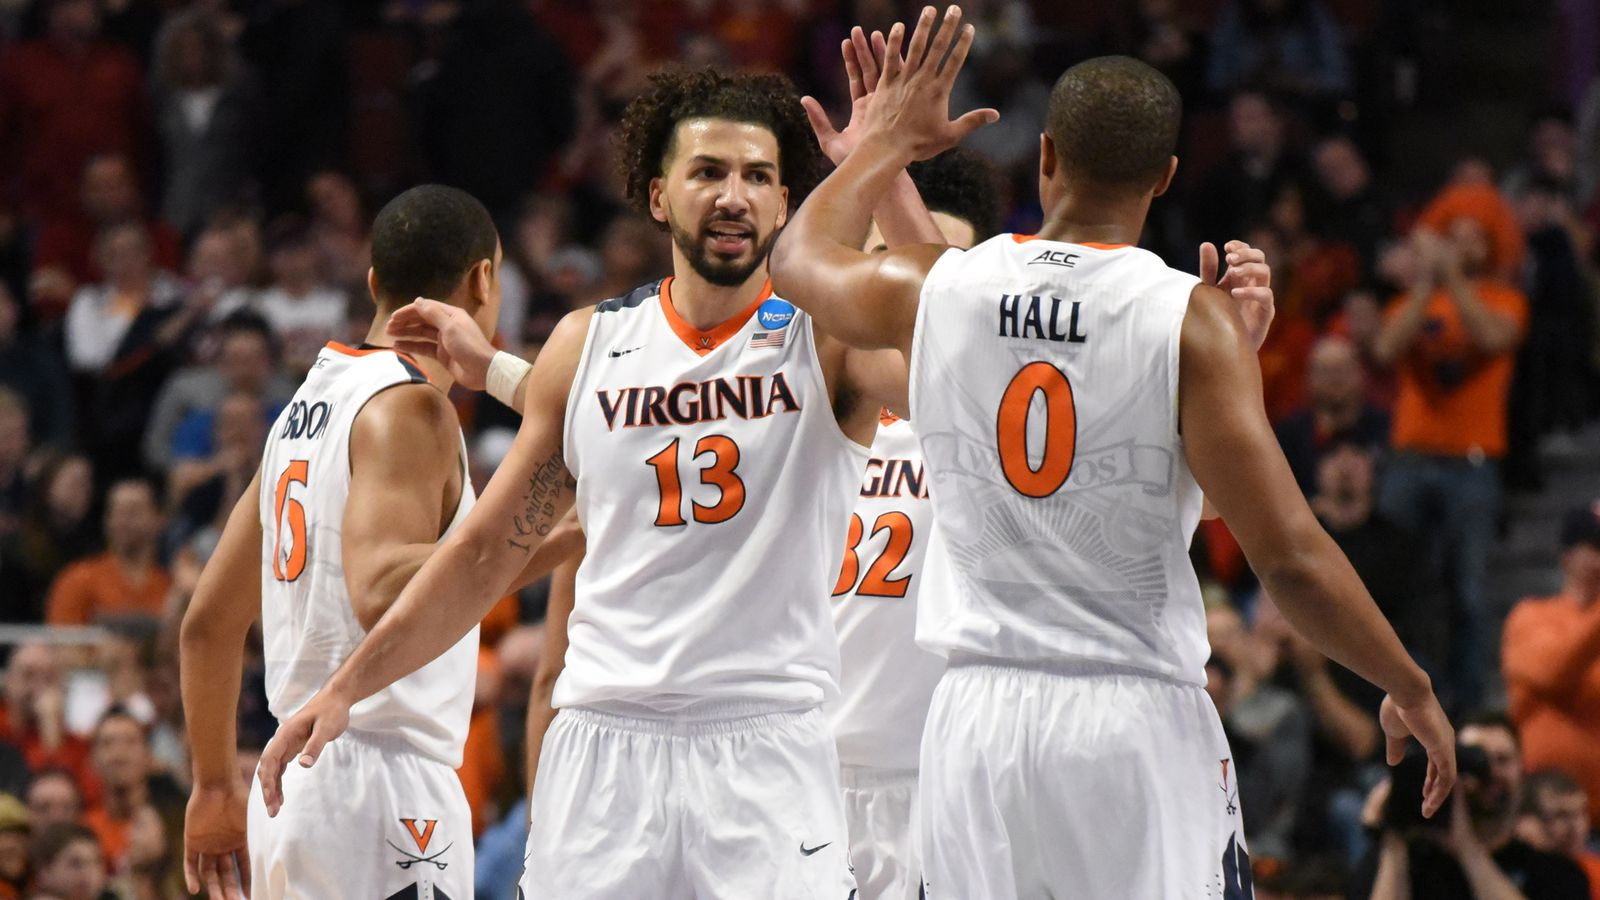 Ncaa Tournament Sweet 16 Schedule Scores And Highlights